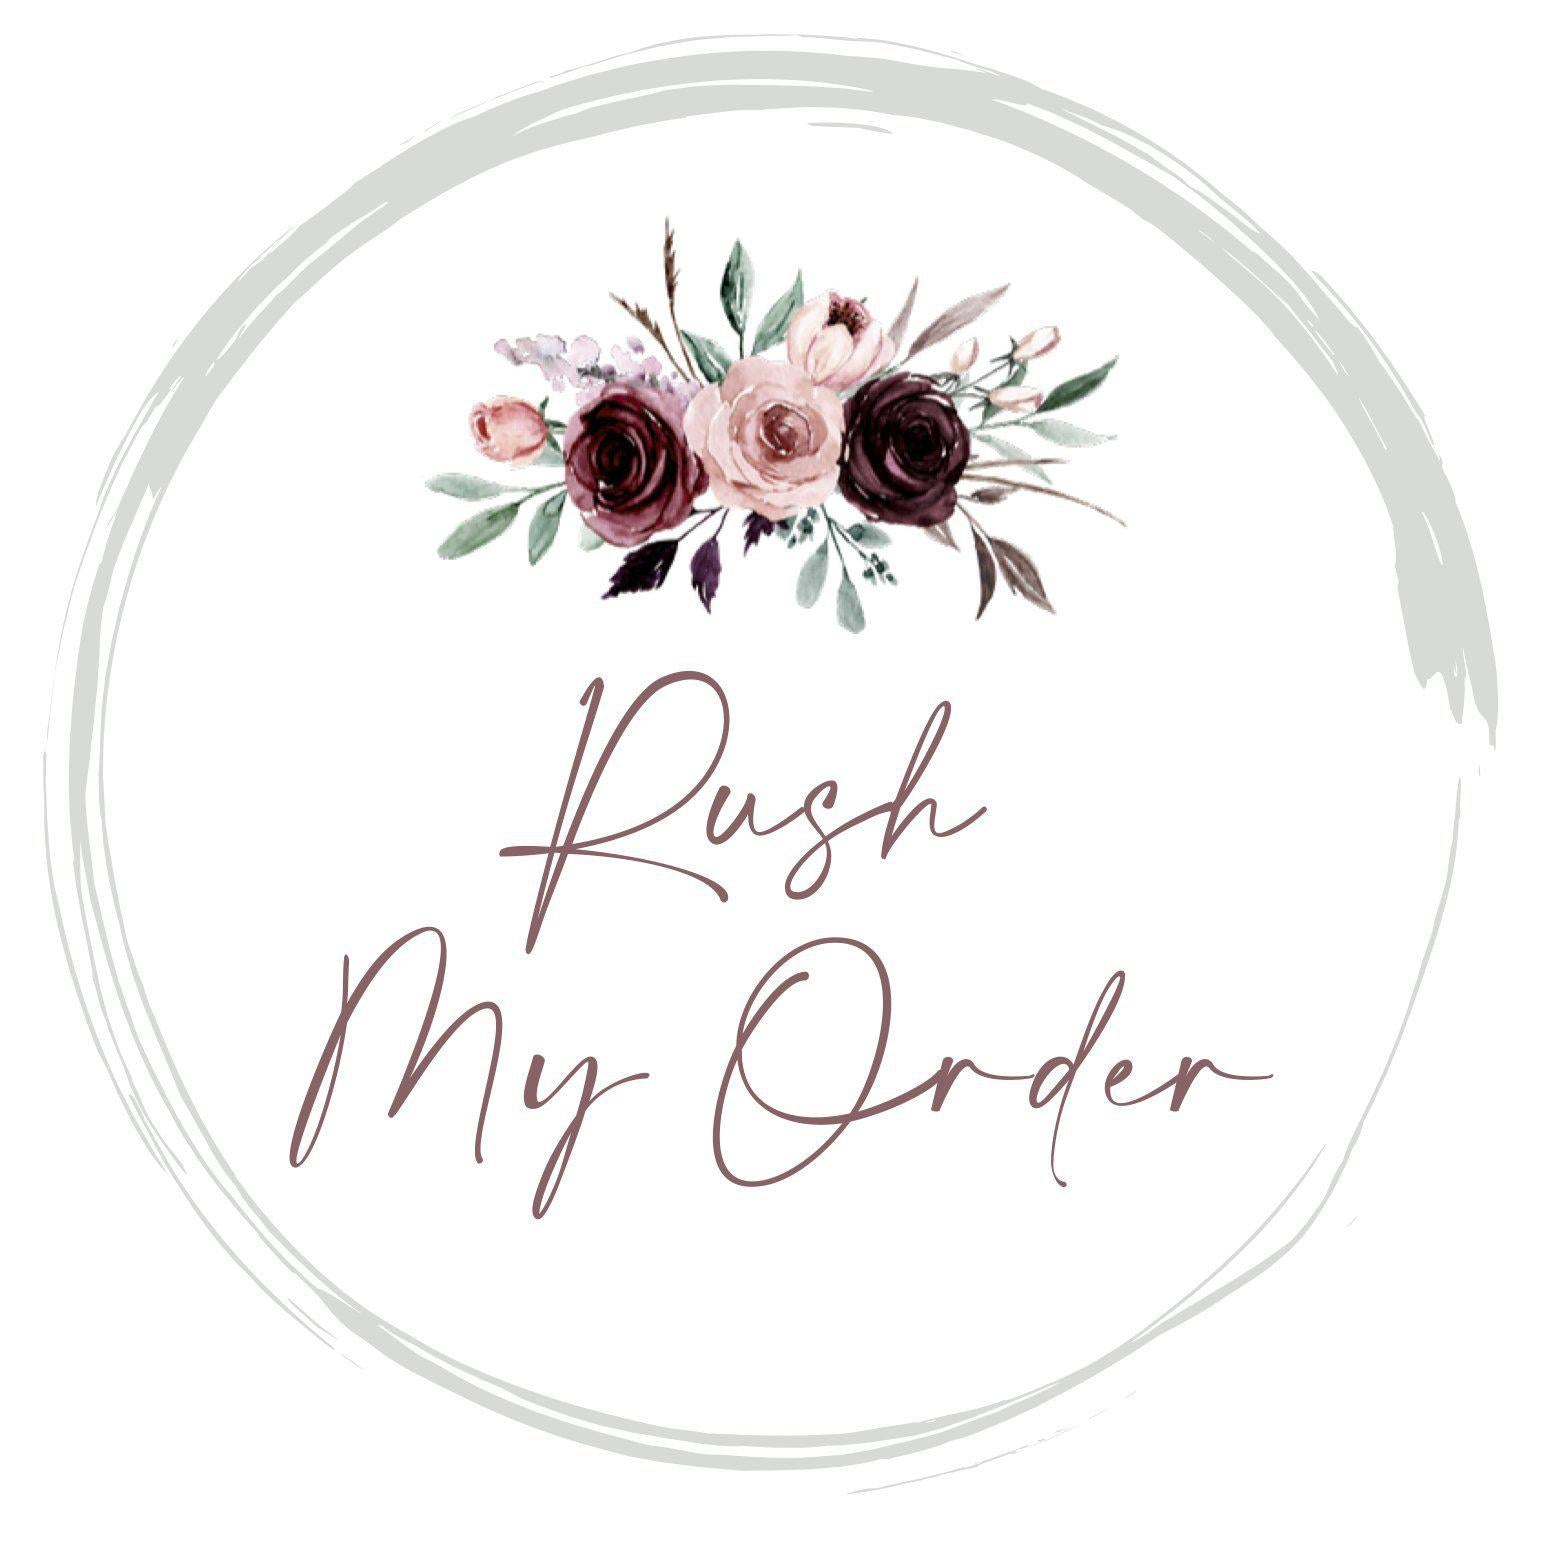 Rush My Home Decor Order - Wood flowers Bouquets, Boutonniere, wedding Floral Decor & Accessories - Papiro Wood Flower Designs